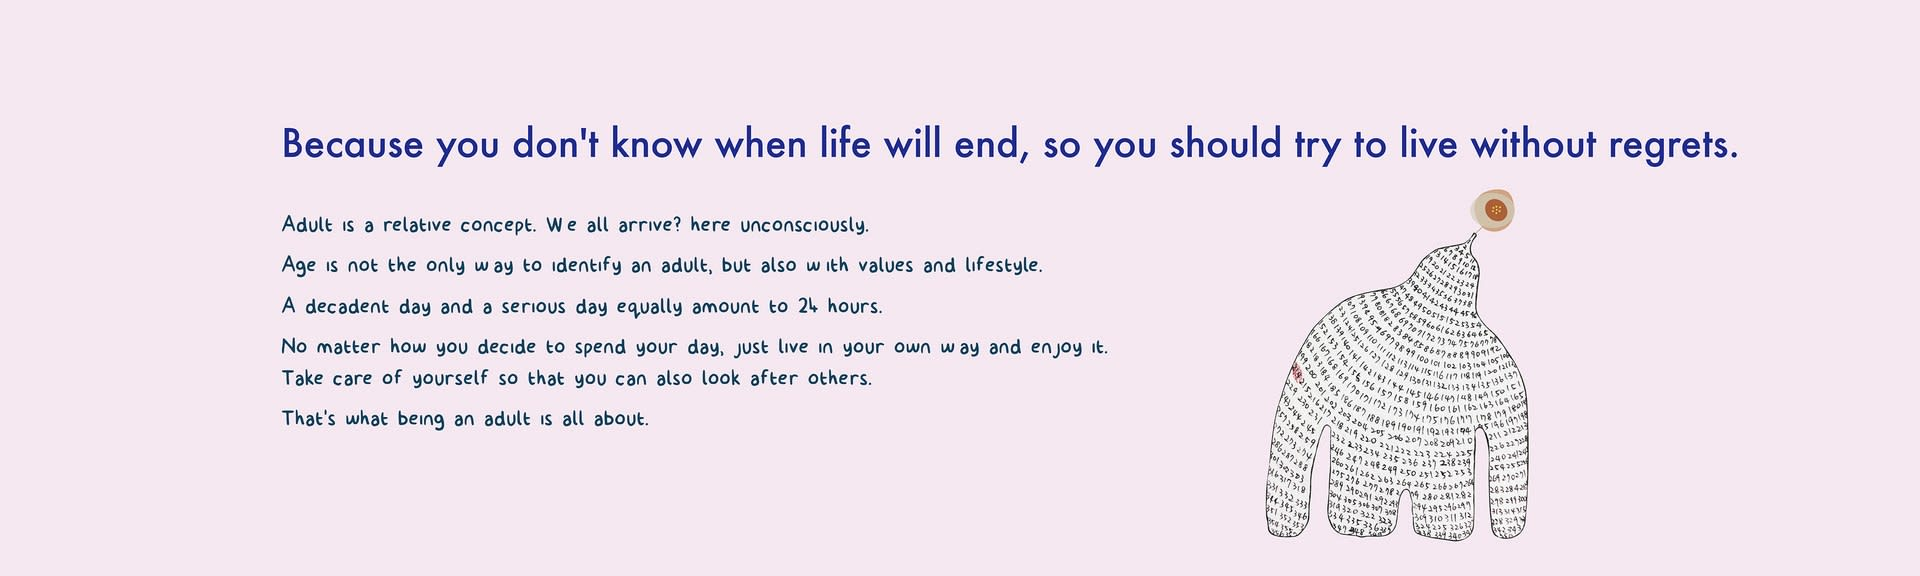 Because you don't know when life will end, please try to live without regrets.